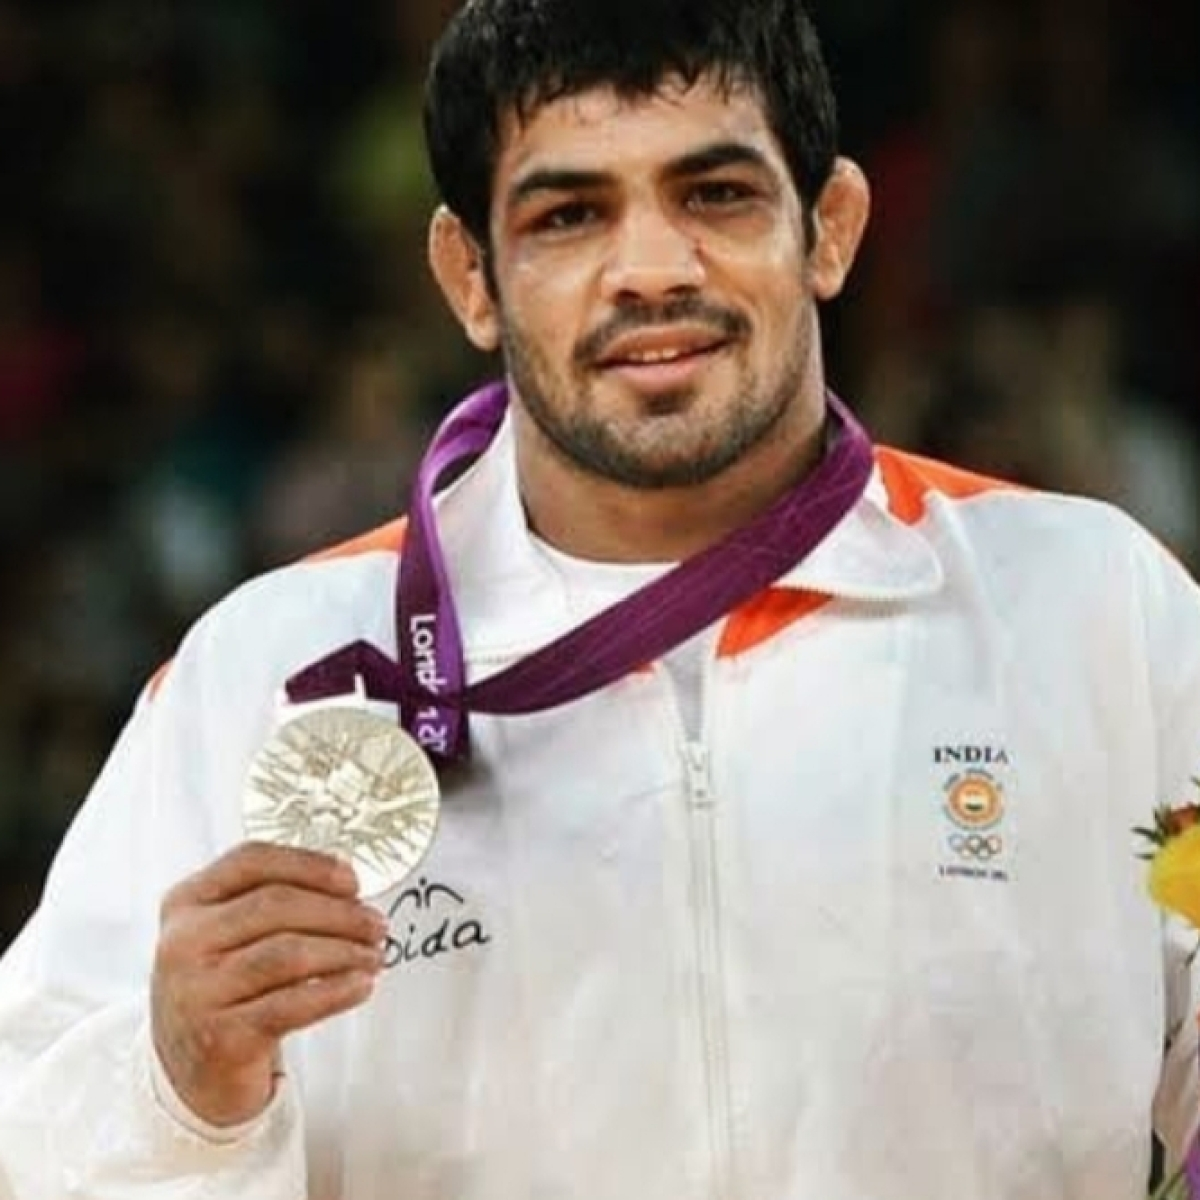 From Olympic medallist to murder accused: On Sushil Kumar's birthday, here's a look at some key moments of his career